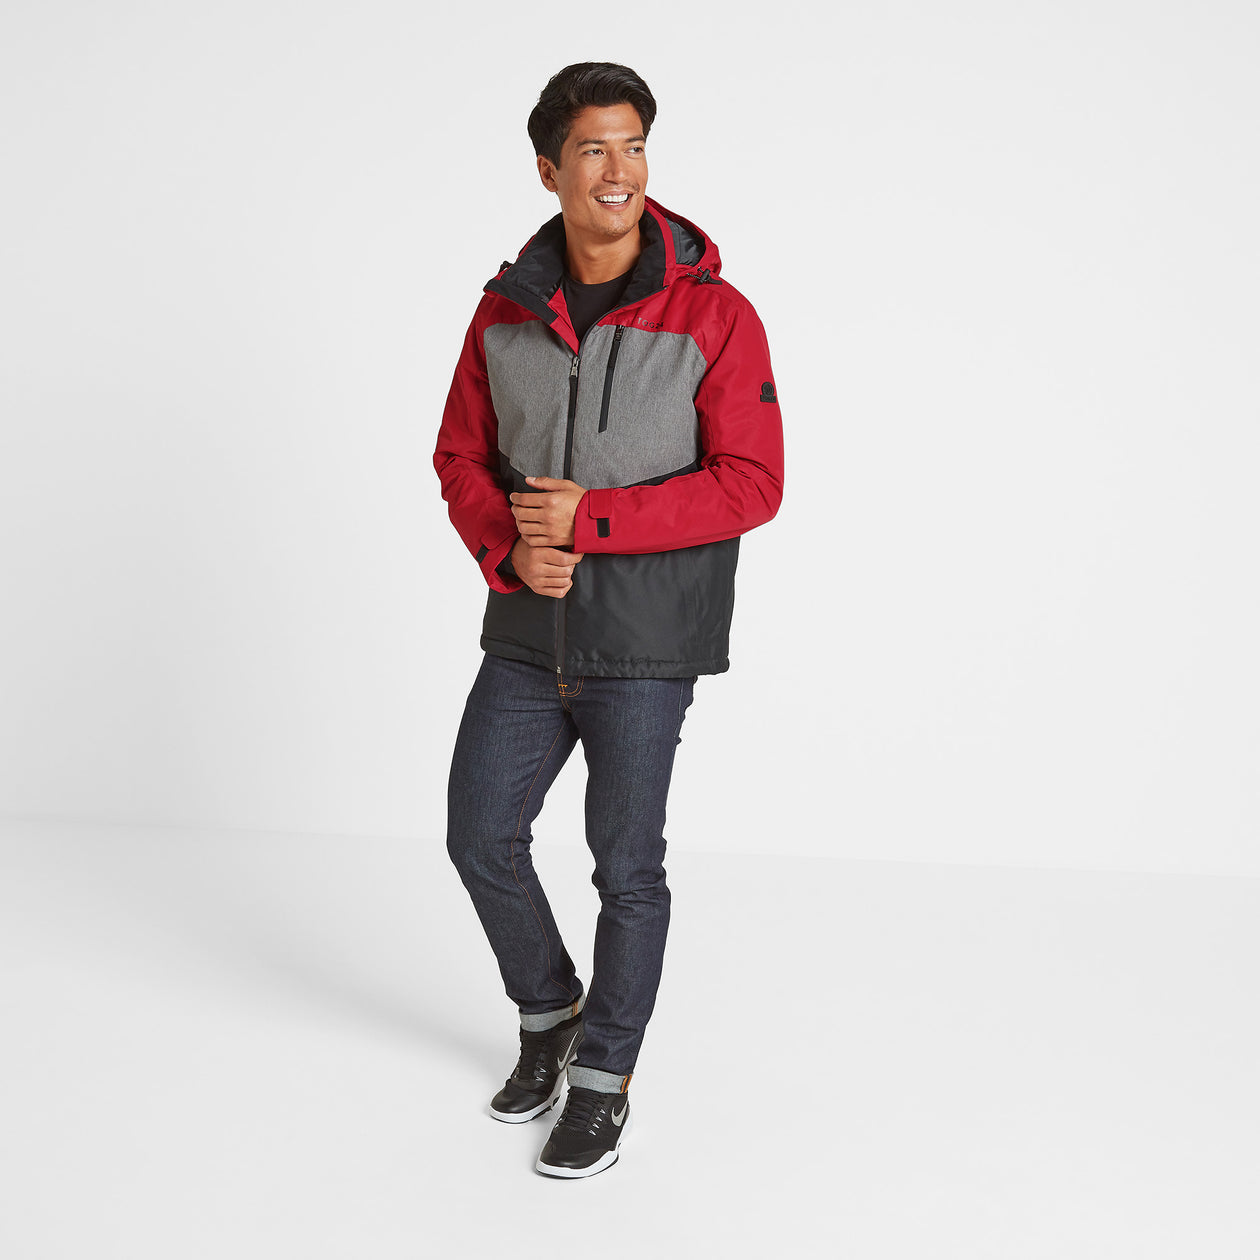 Blade Mens Winter Jacket - Chilli/Grey/Black image 4